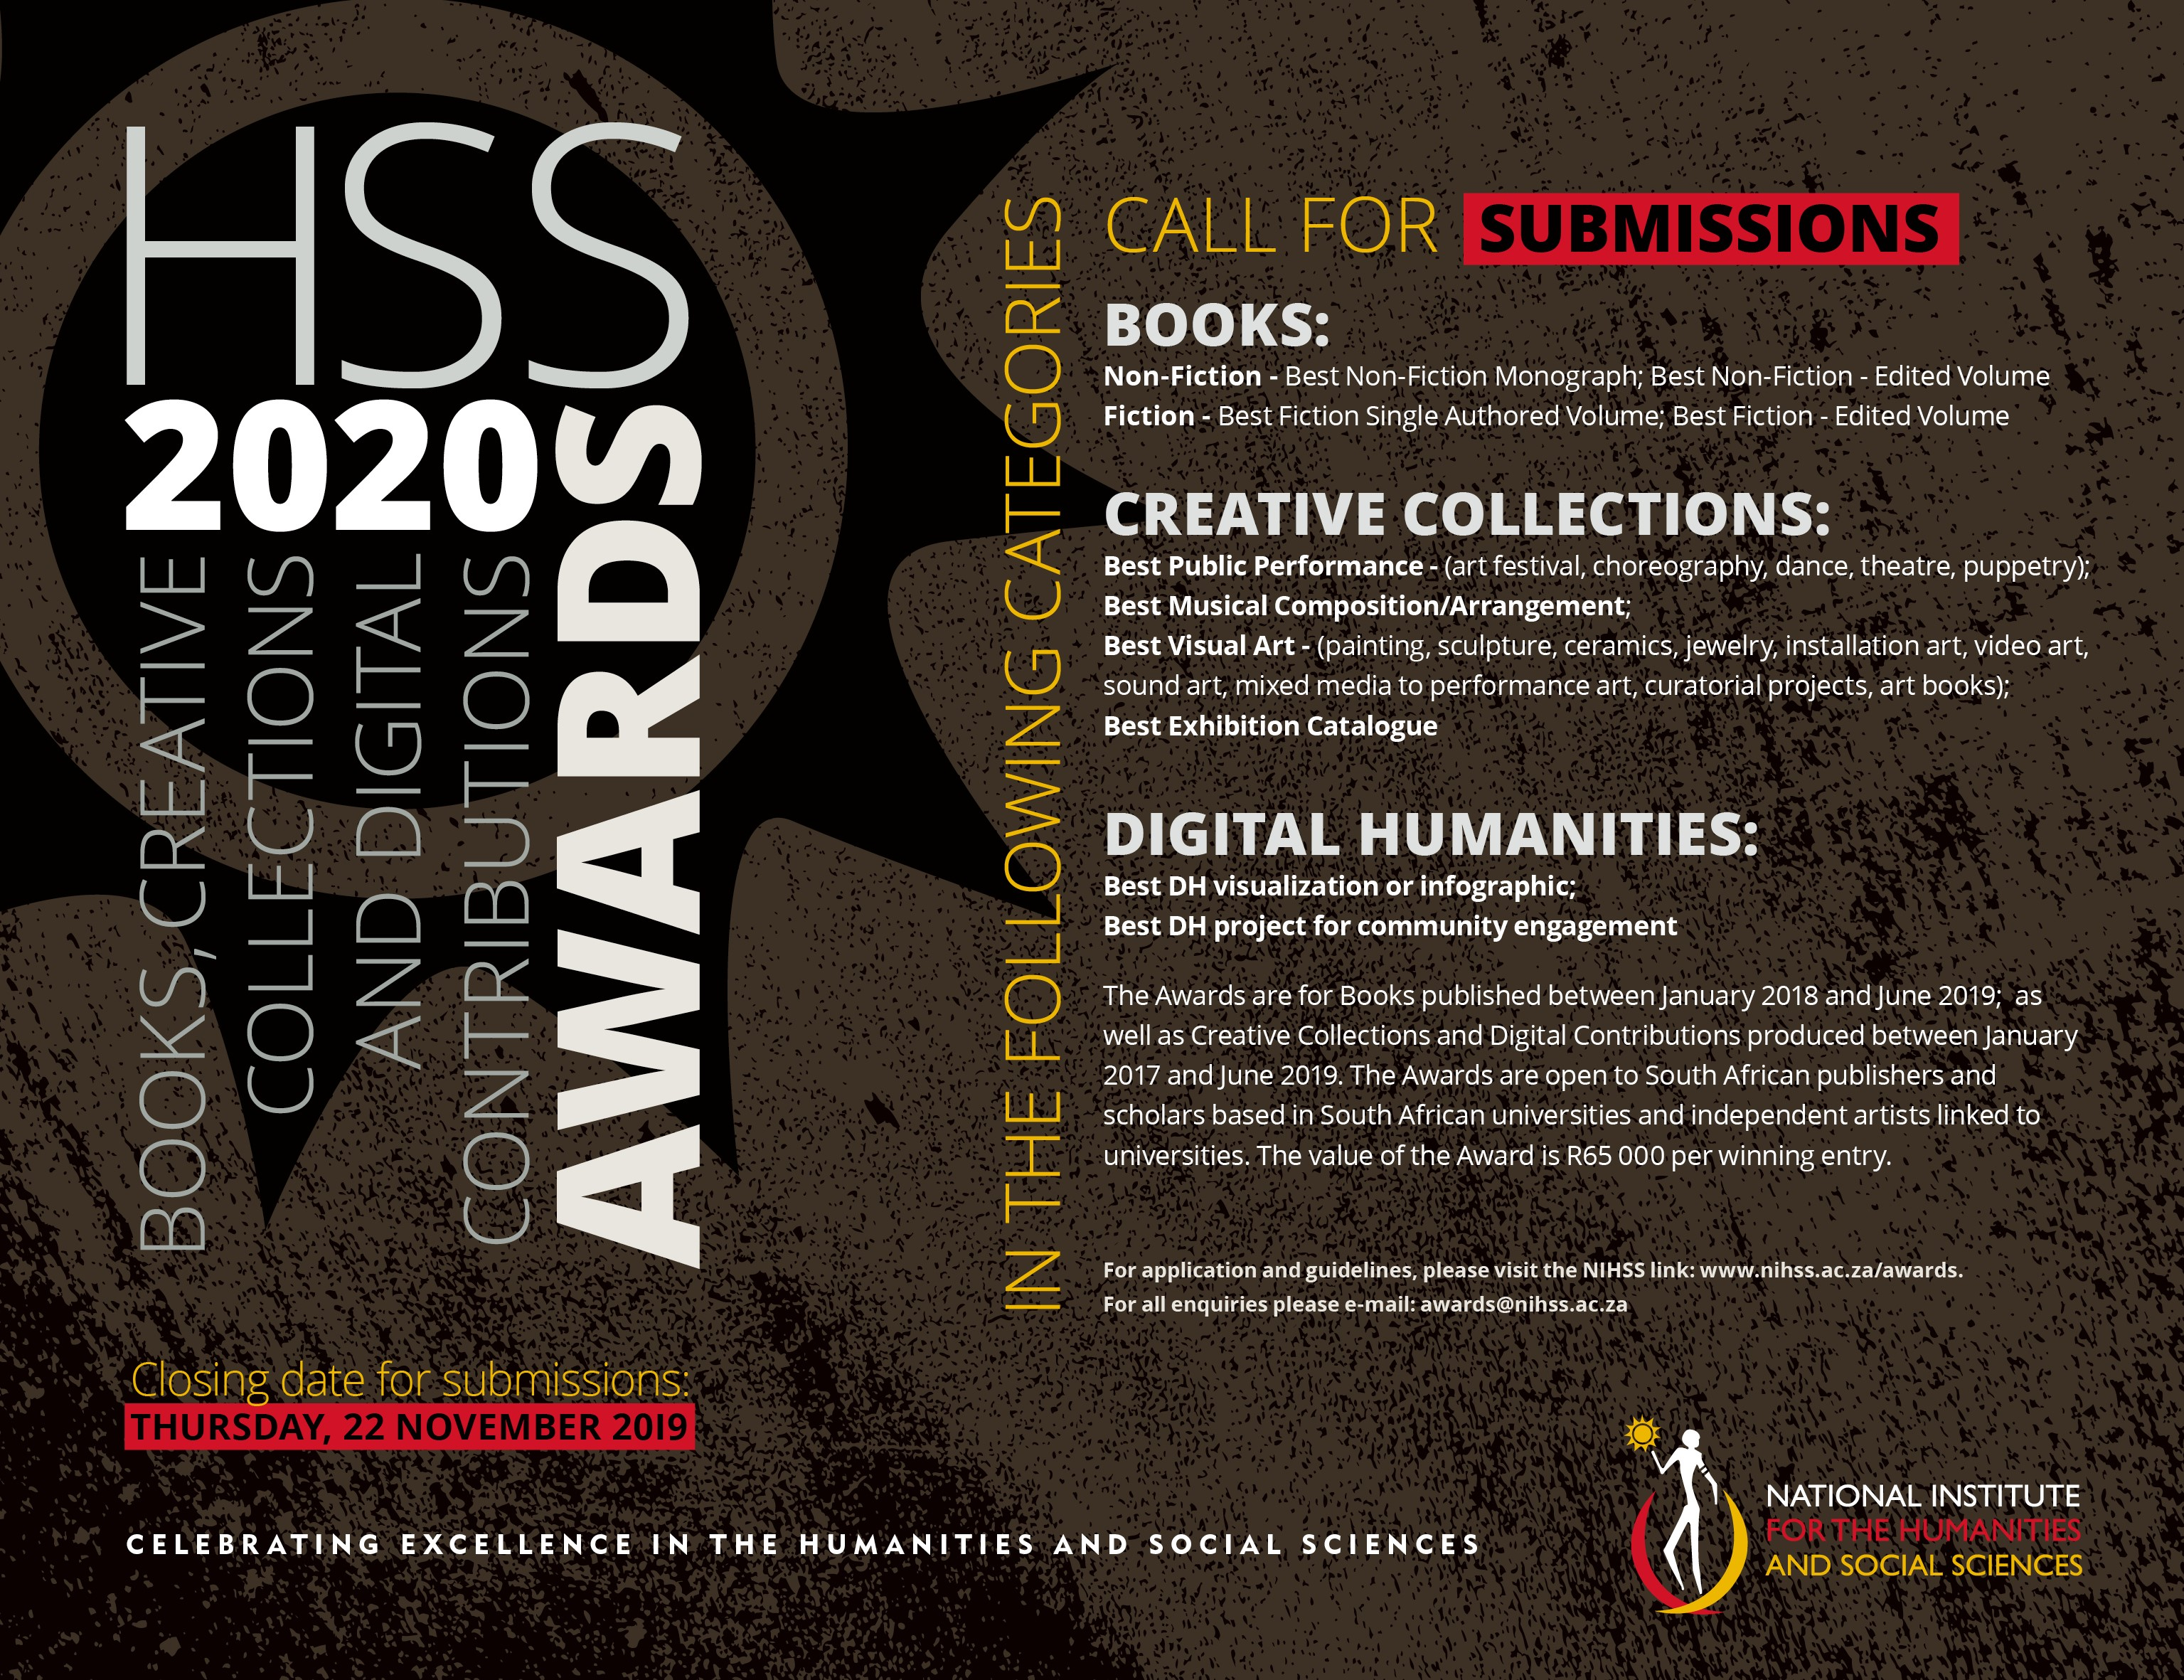 HSS 2020 Call for Submissions